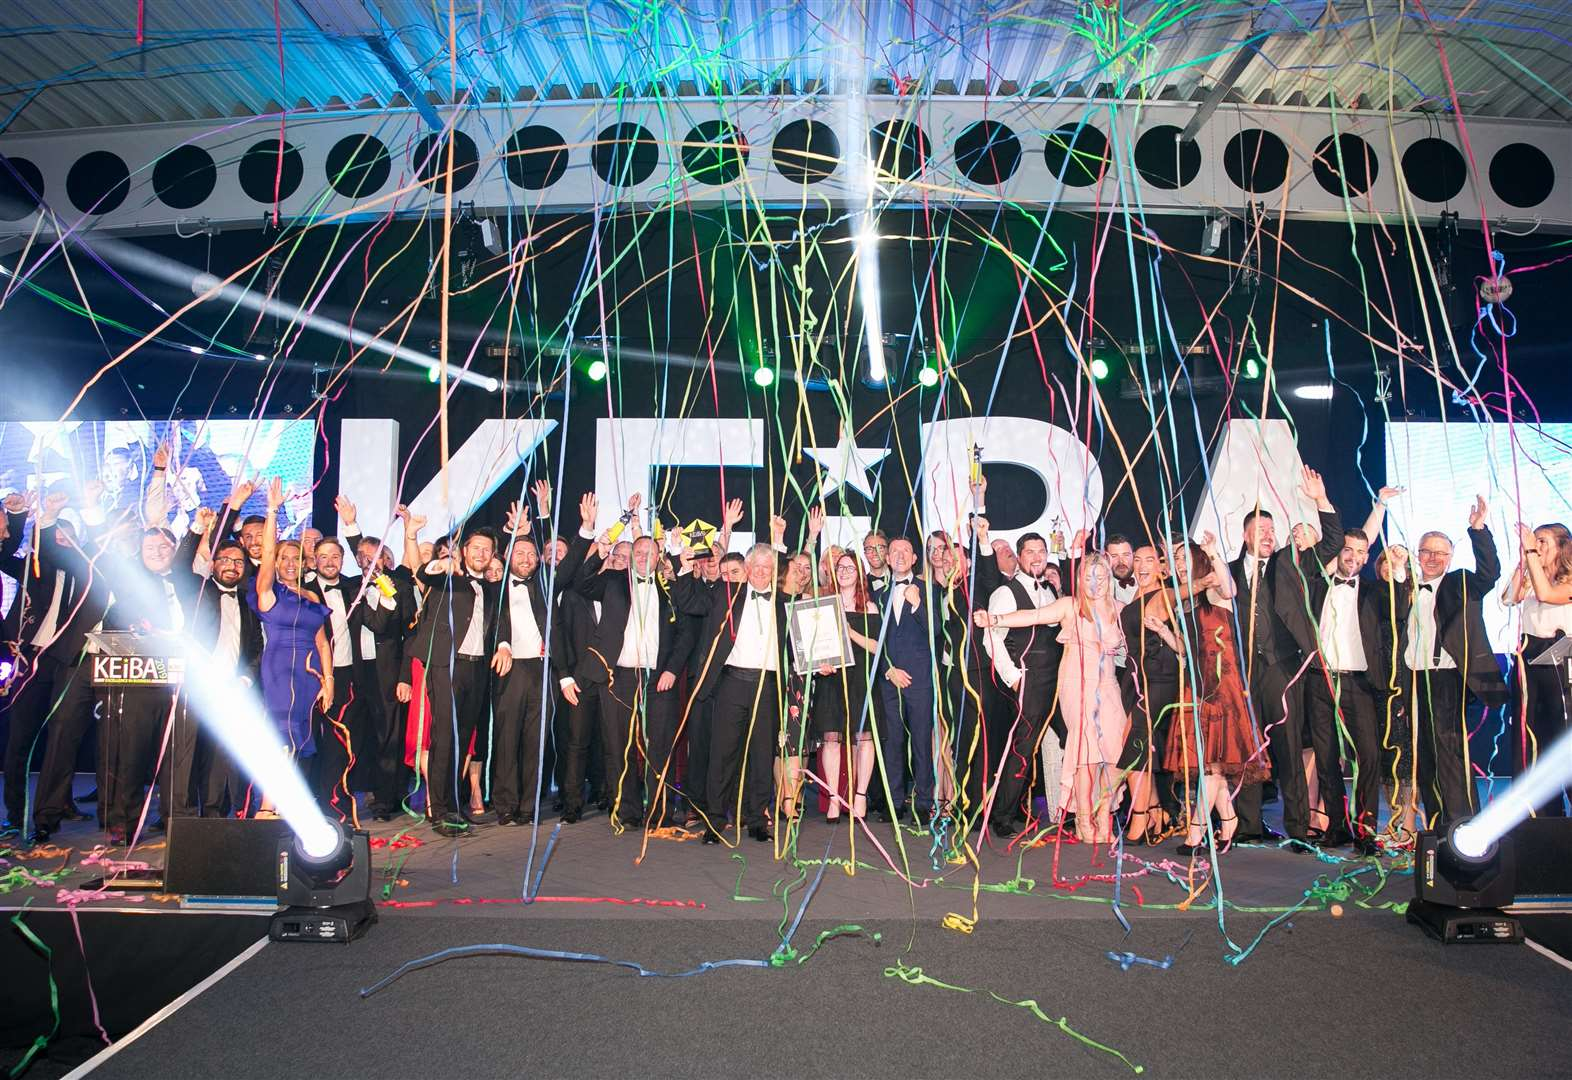 KEiBA 2019: Pictures from the gala night